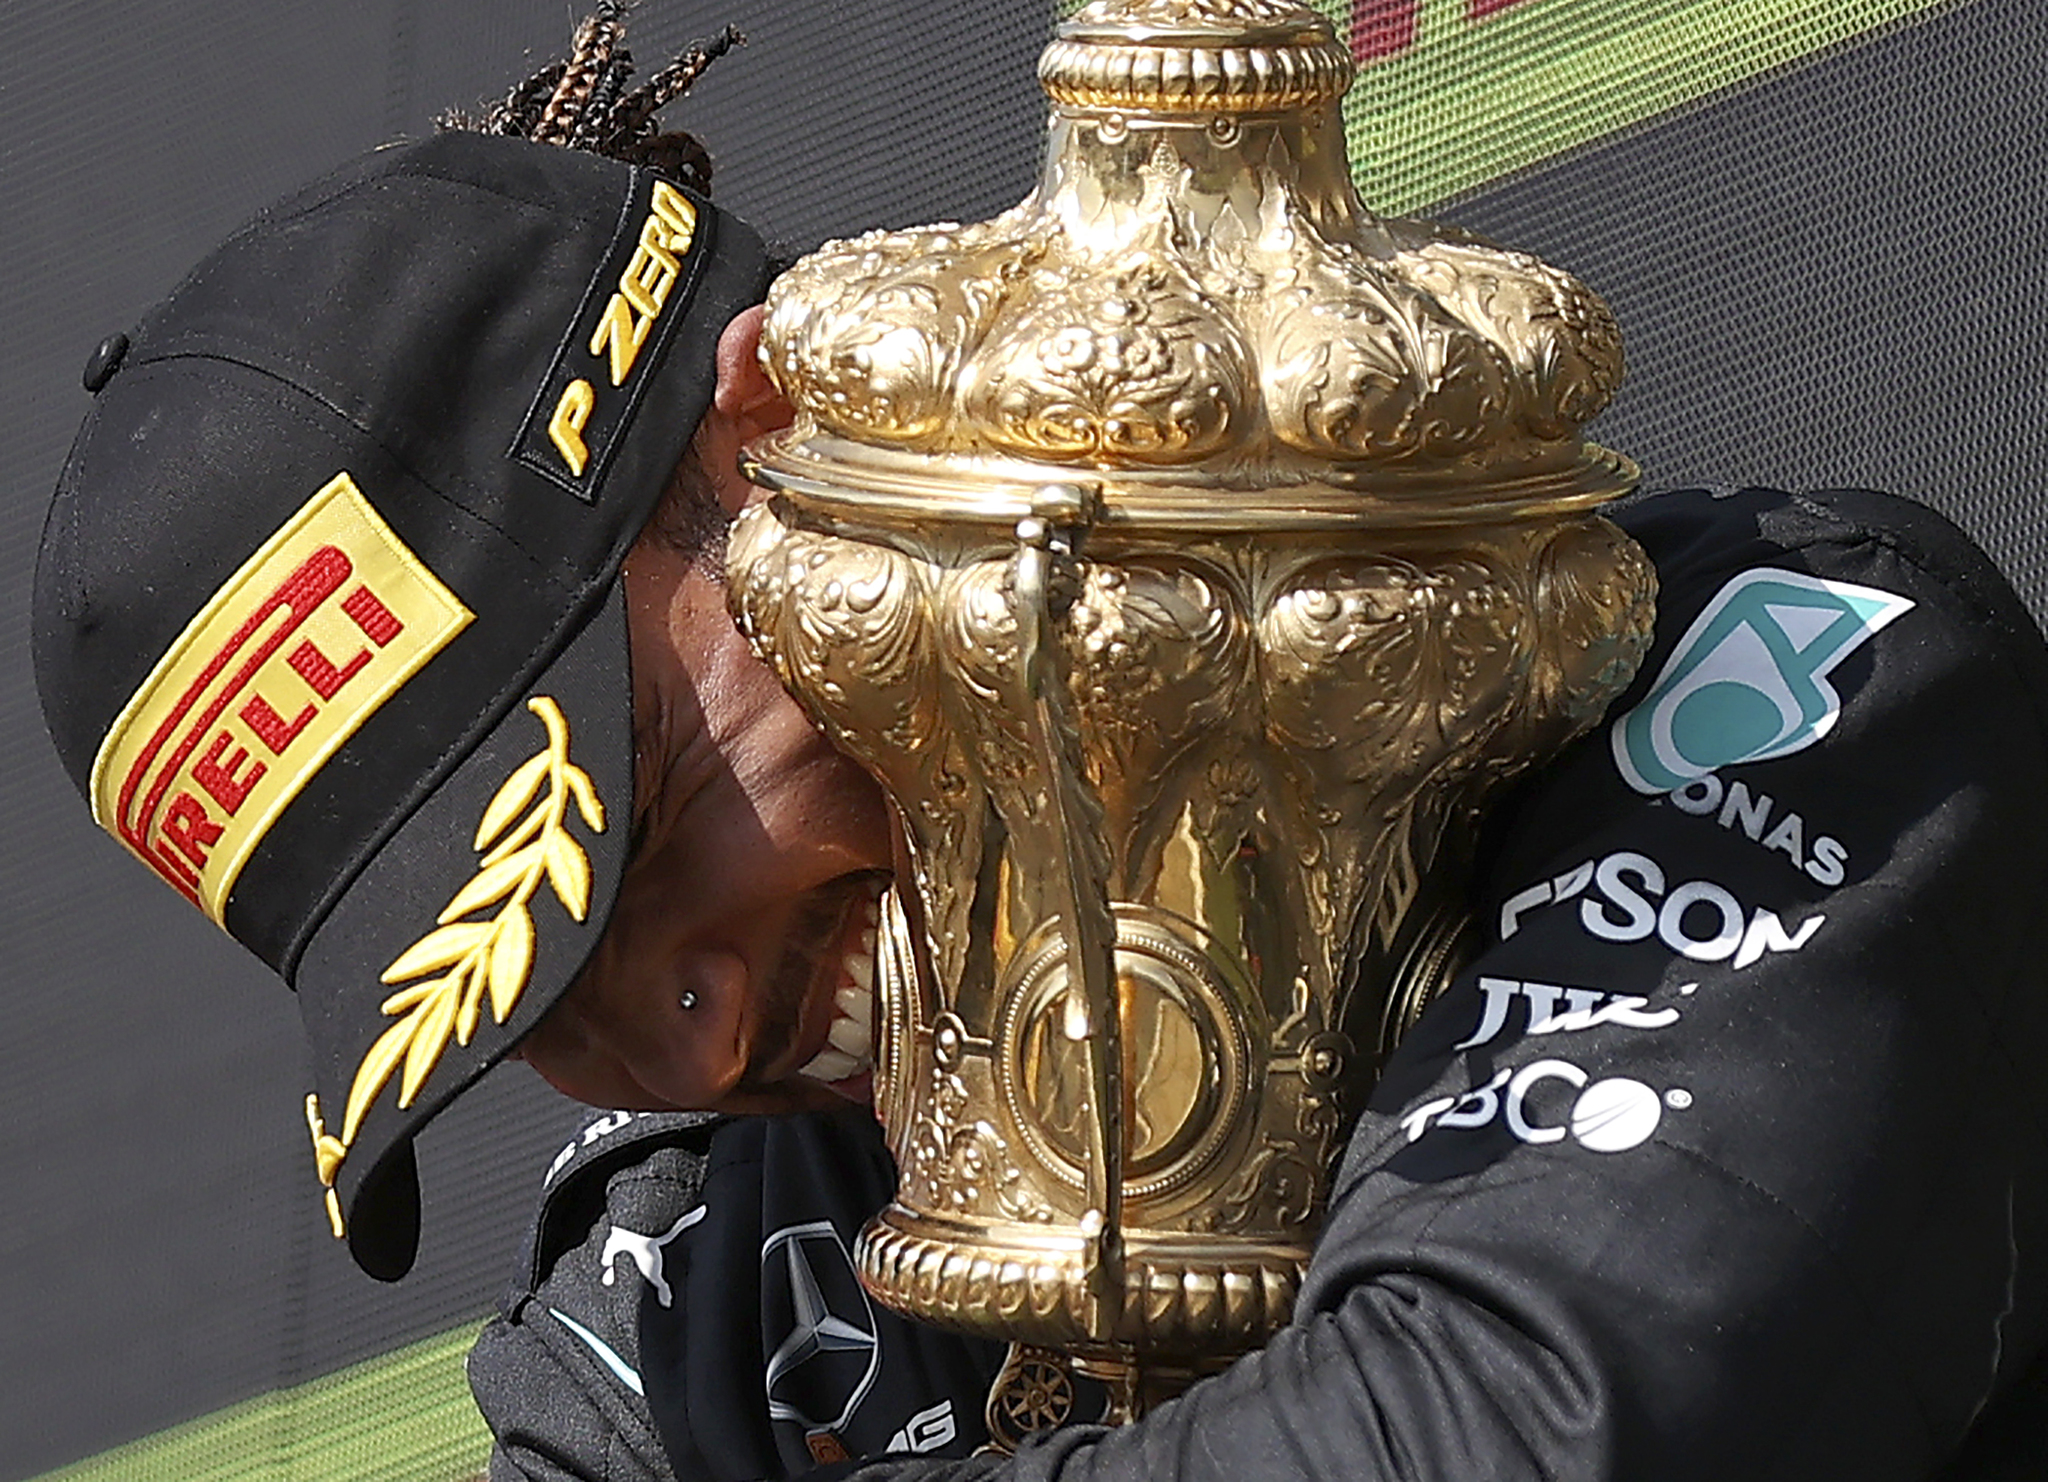 Mercedes driver Lewis lt;HIT gt;Hamilton lt;/HIT gt; of Britain celebrates on the podium after winning the British Formula One Grand Prix, at the Silverstone circuit, in Silverstone, England, Sunday, July 18, 2021. (Lars Baron/Pool photo via AP)